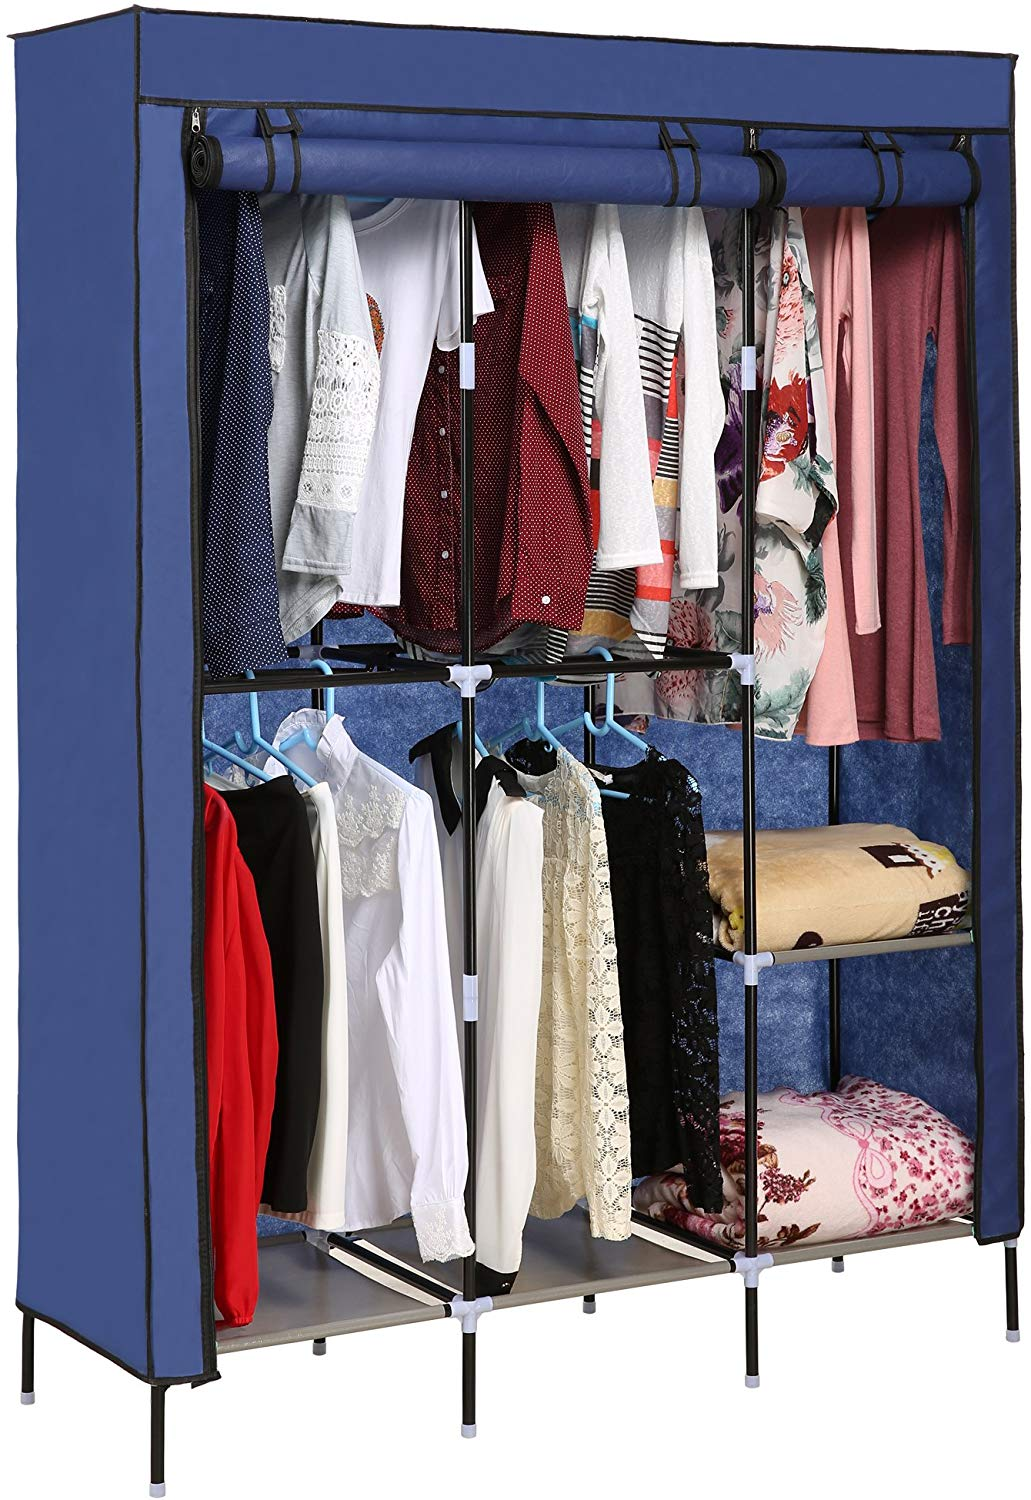 Korie Portable Clothes Closet Wardrobe Storage Double Rod Freestanding Closet with Non-Woven Fabric, Quick and Easy to Assemble